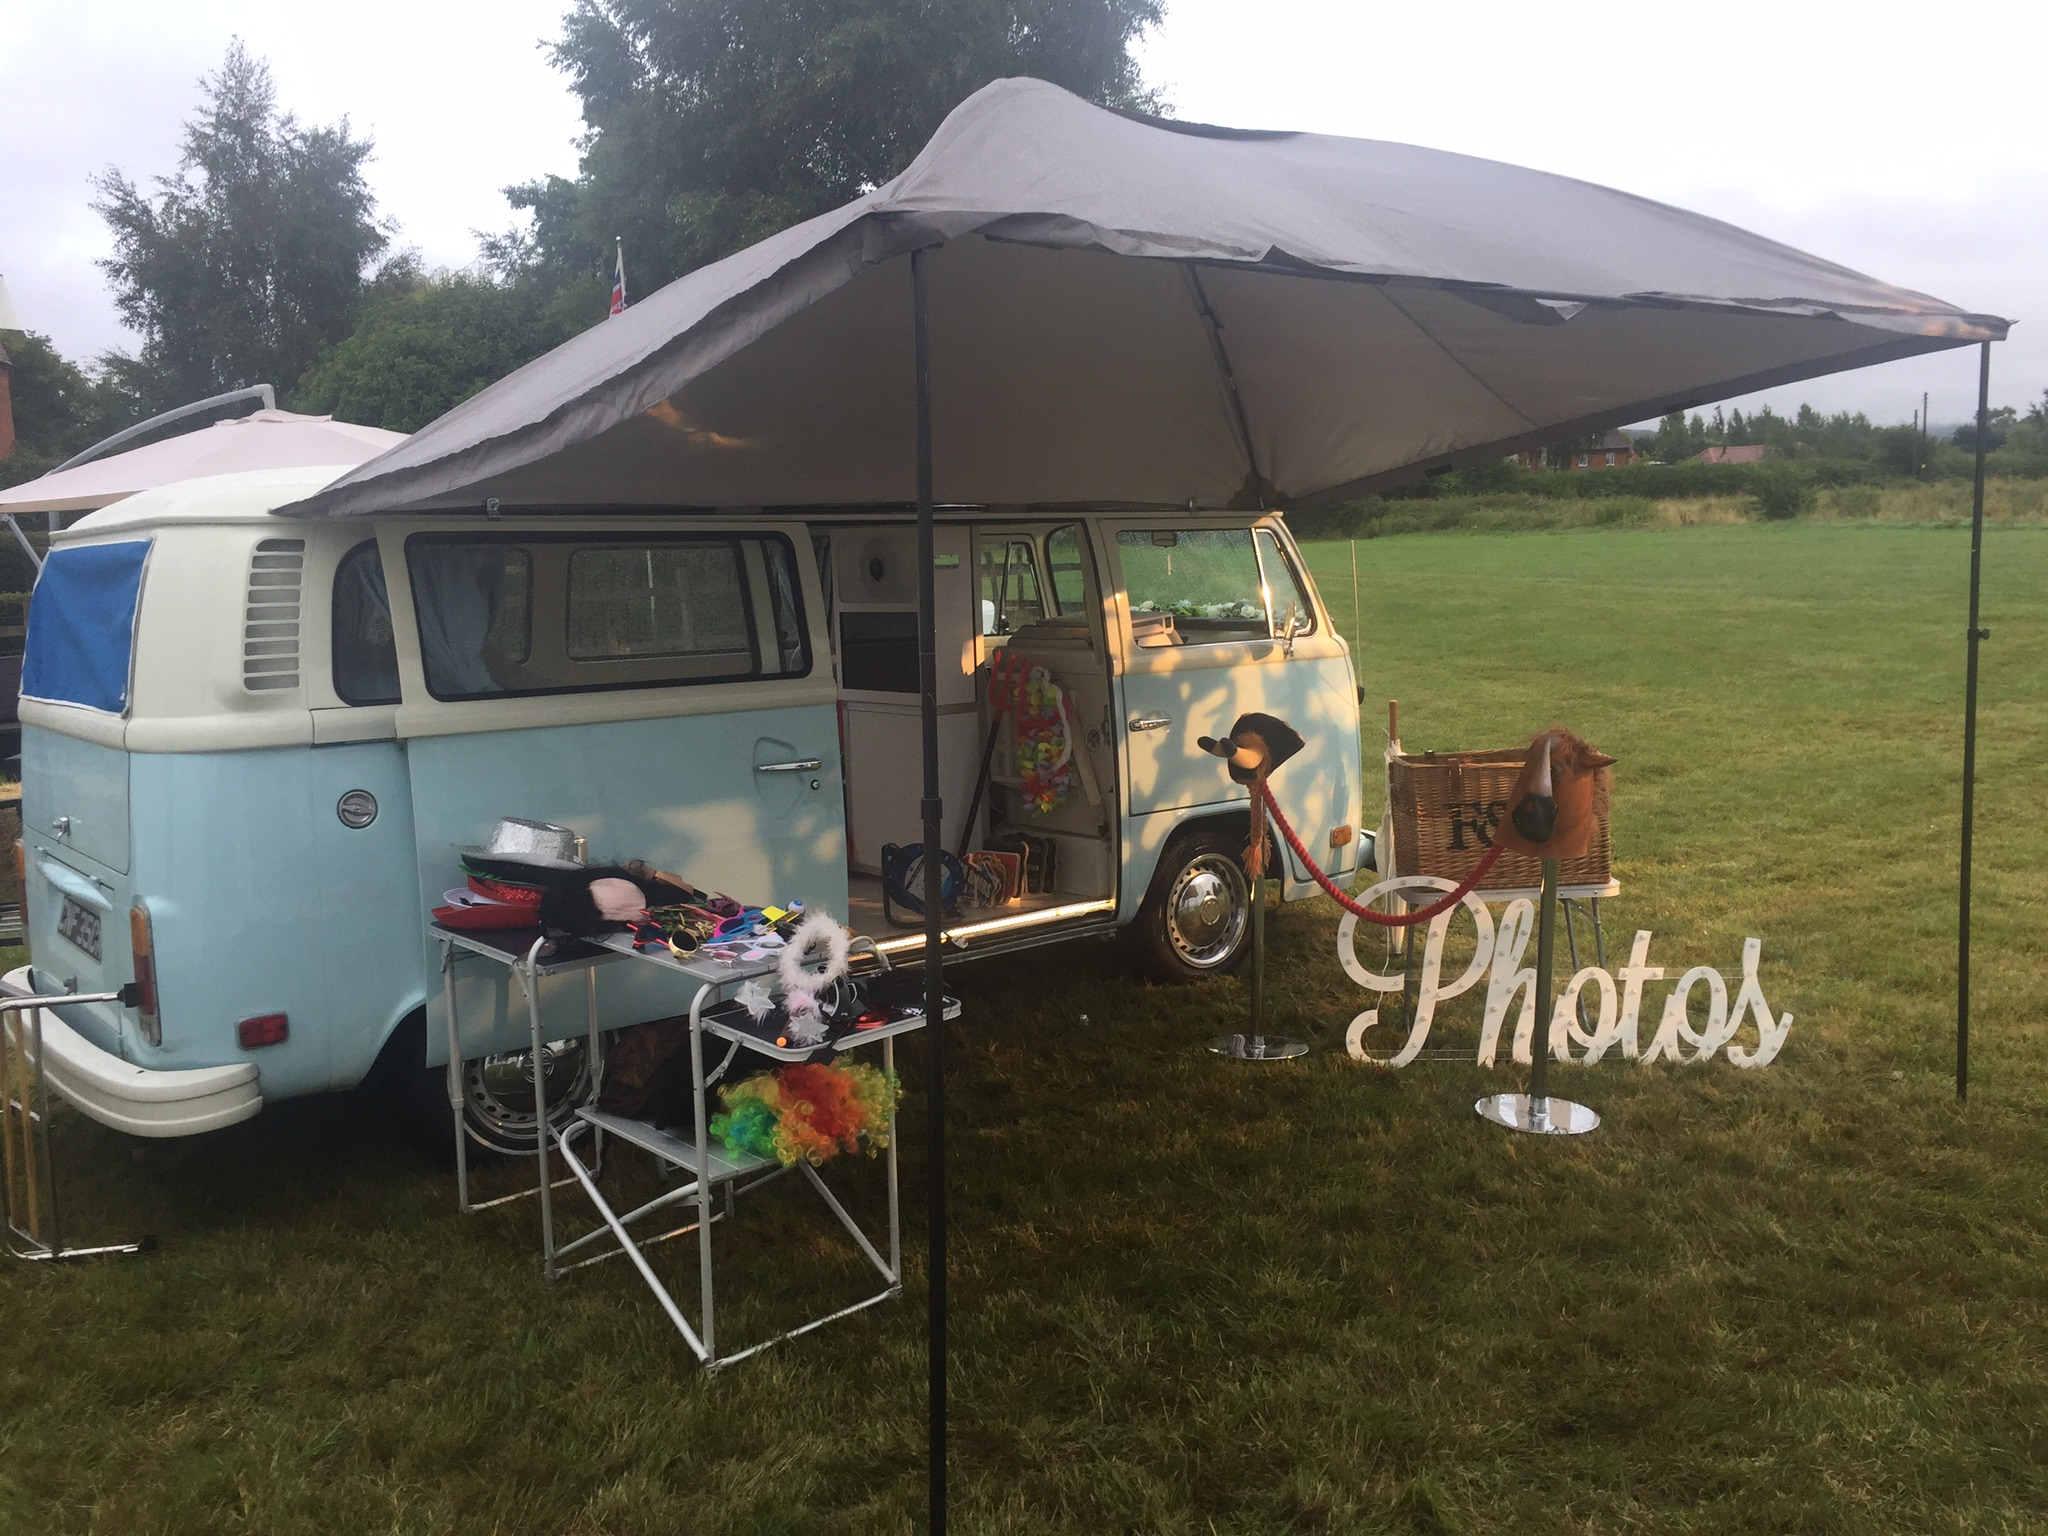 VW Camper with canopy